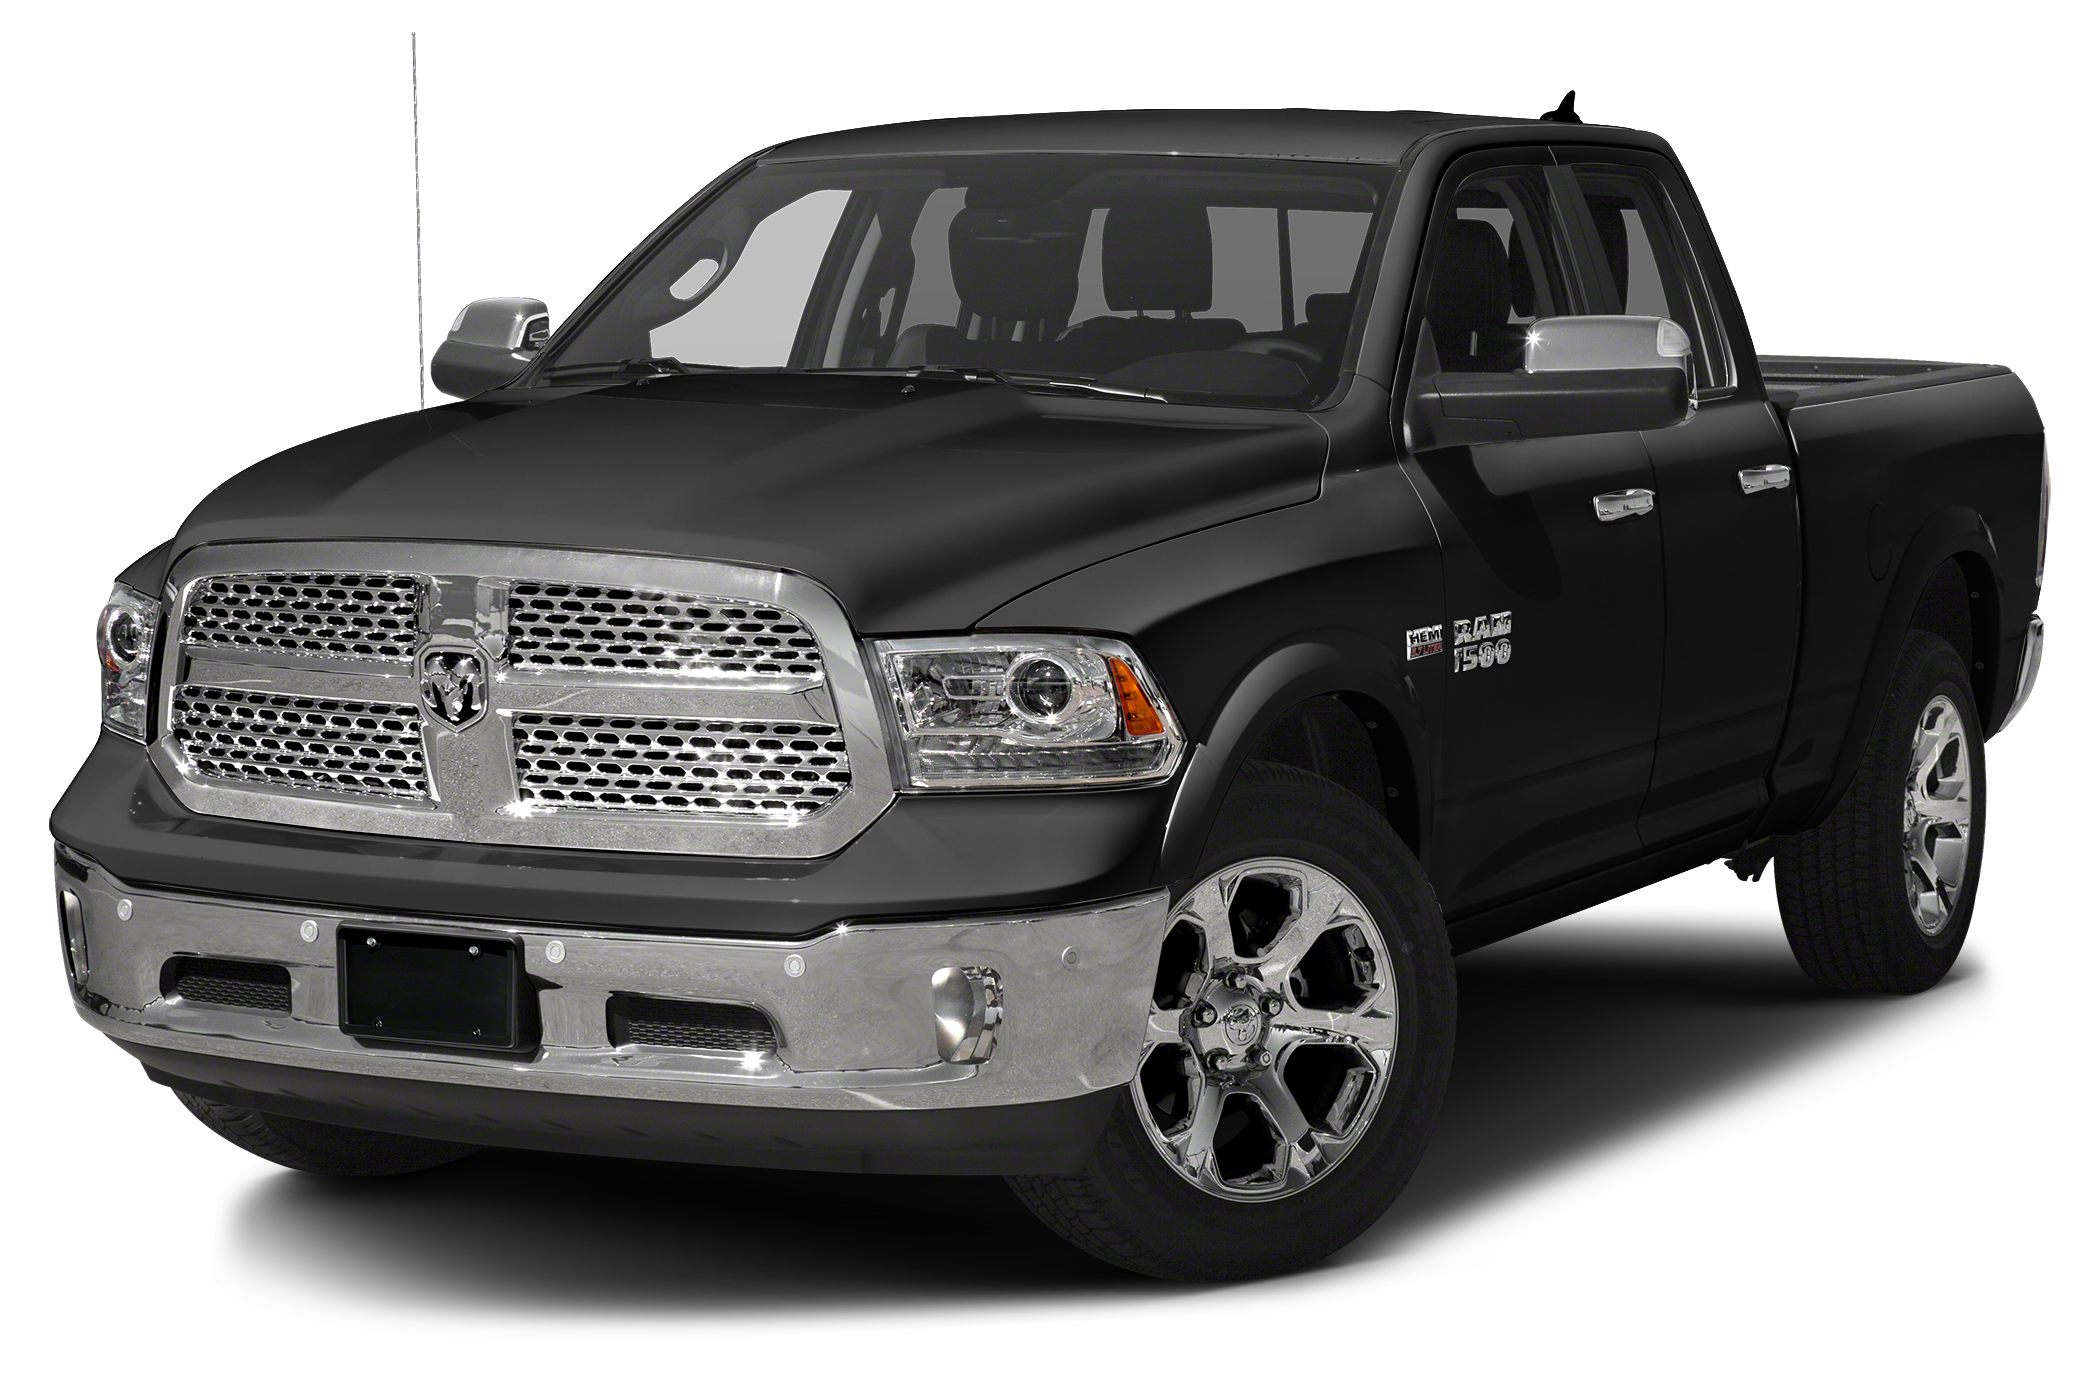 2017 RAM 1500 Laramie New Inventory Its ready for anything Come and get it Your lucky day